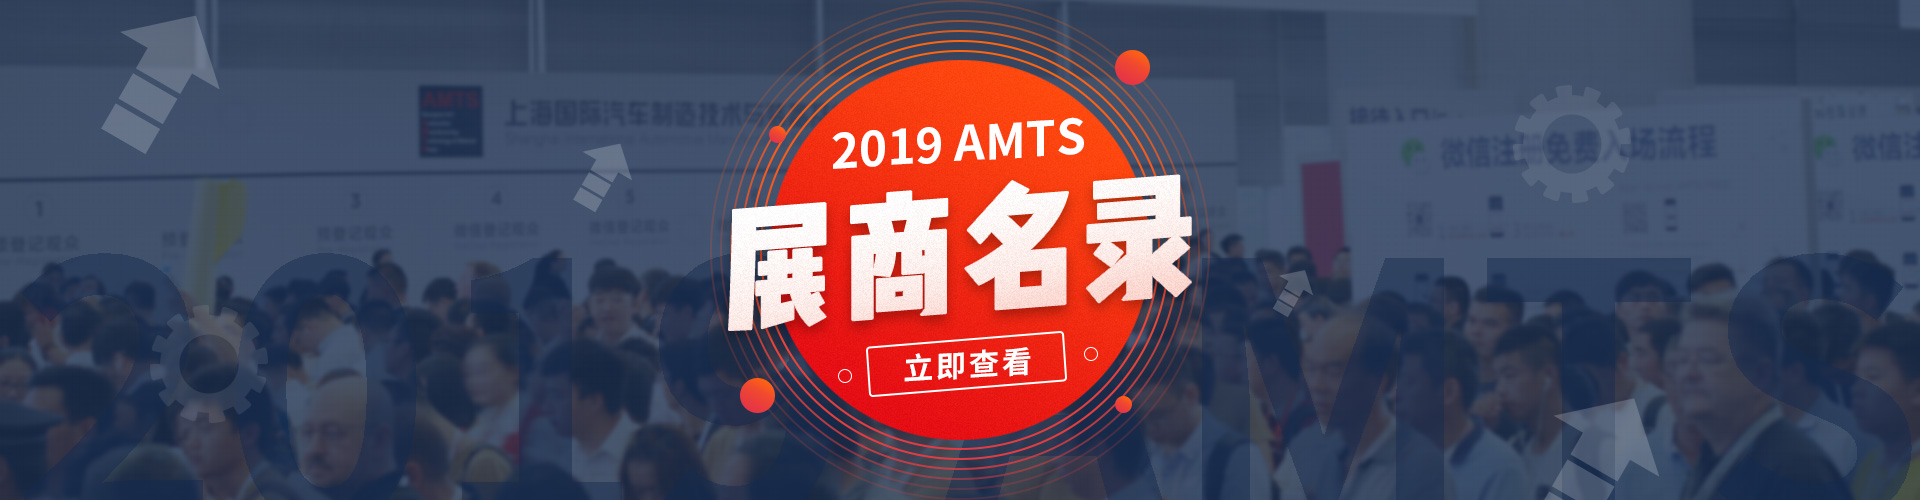 AMTS 2019 Exhibitor List